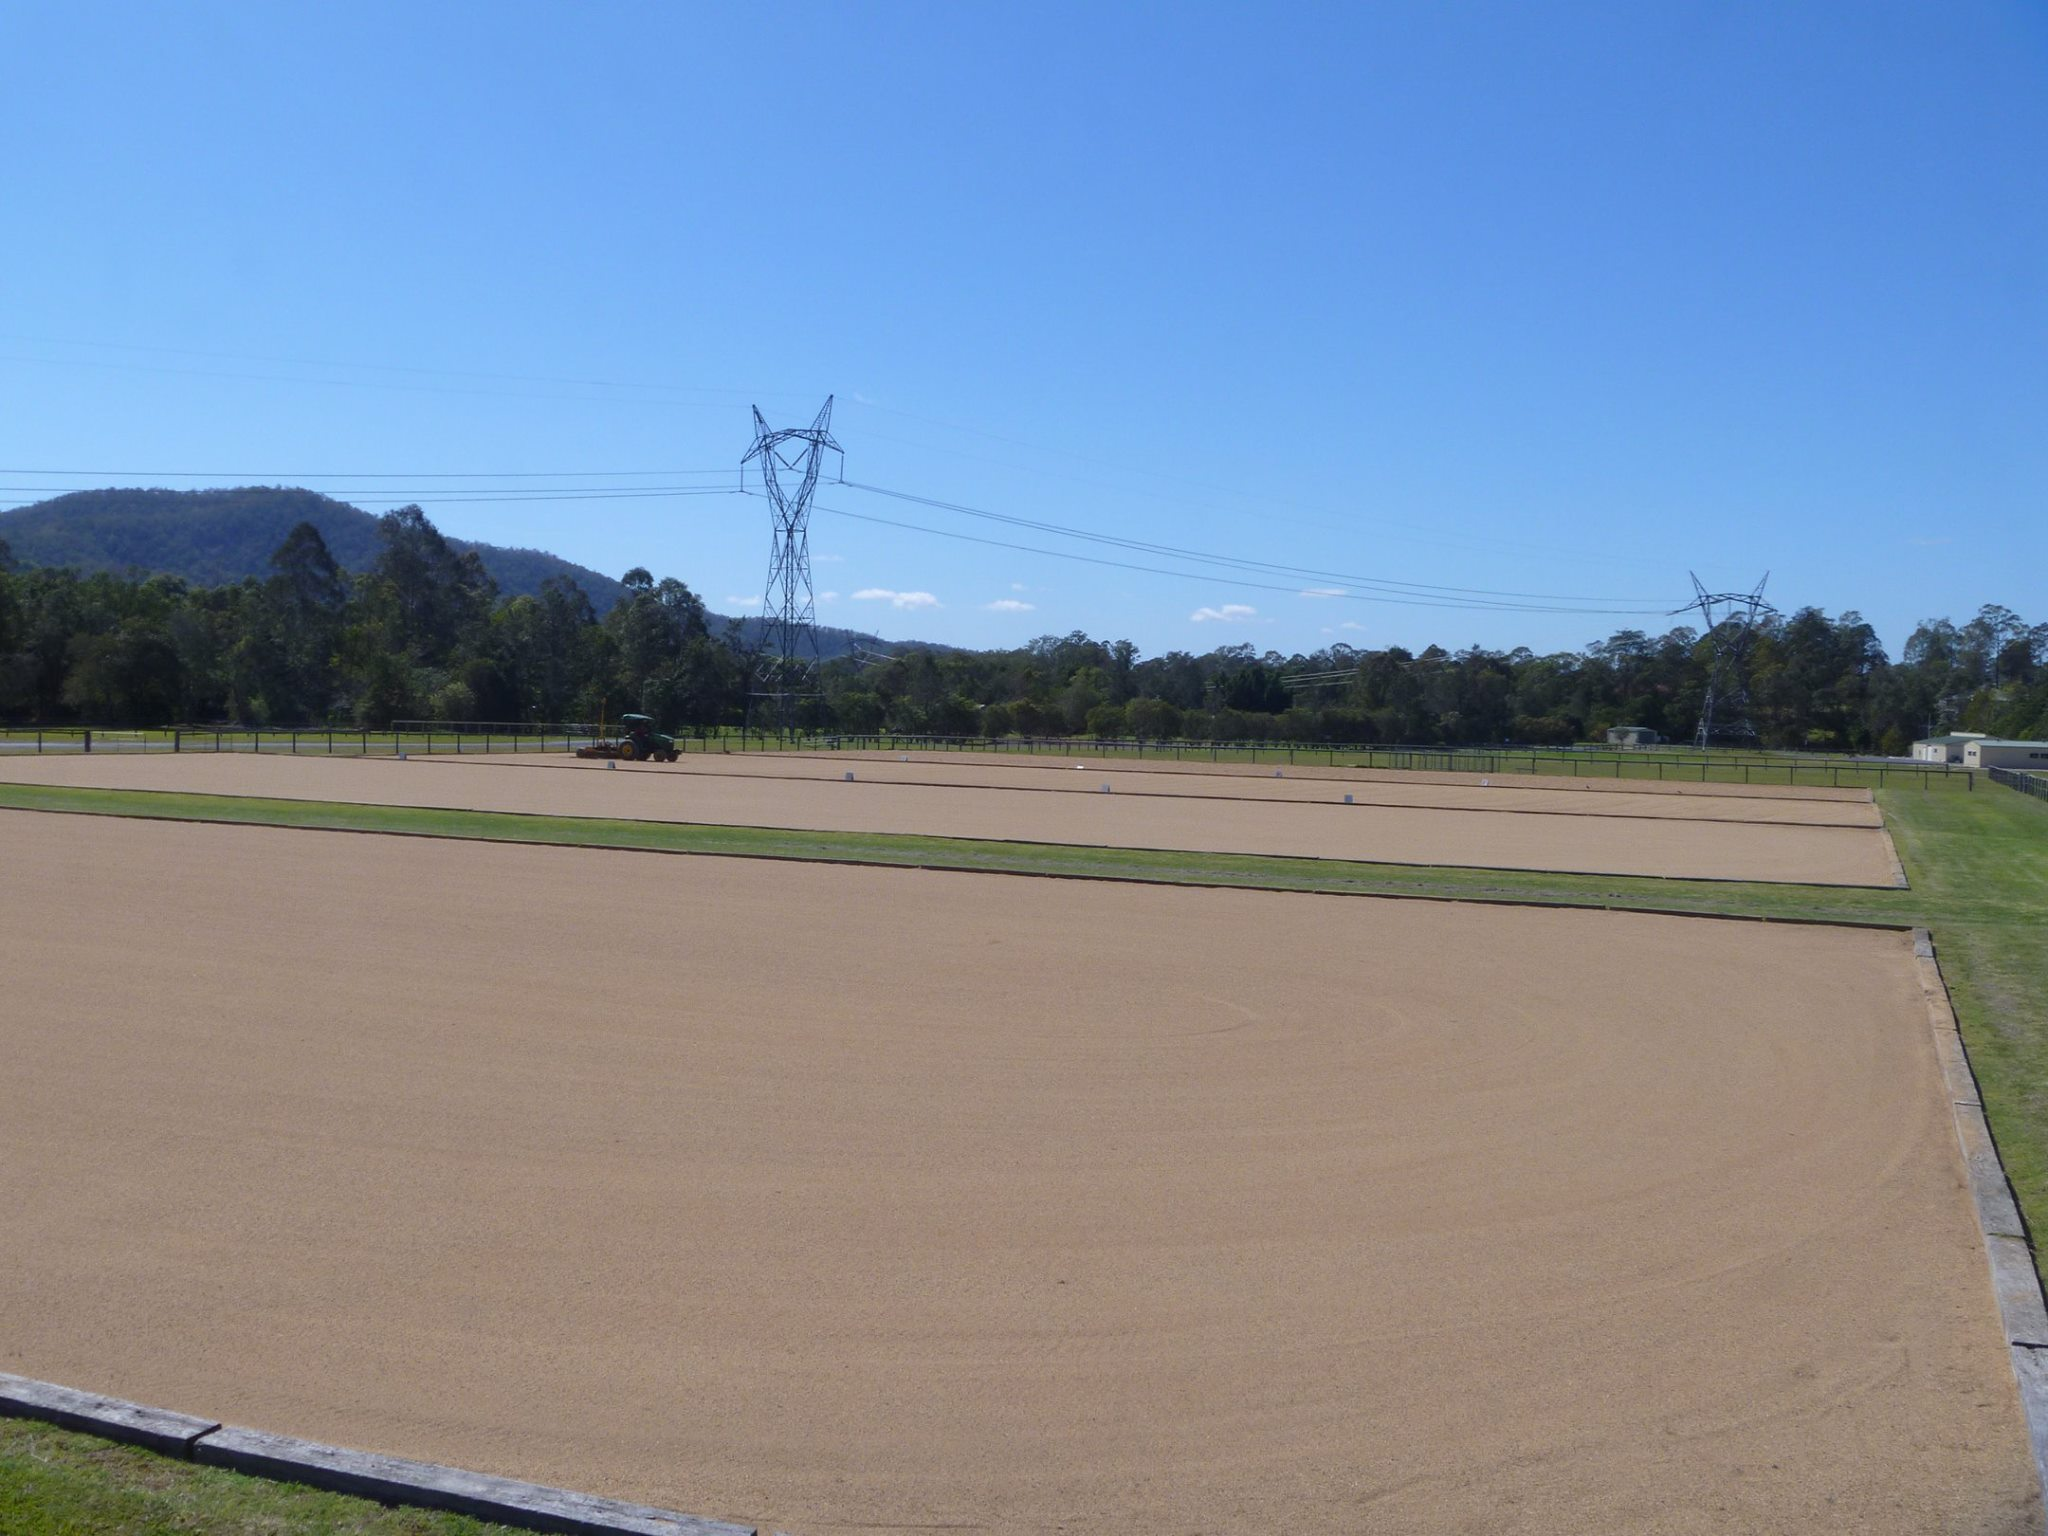 Samford Equestrian Group, Samford, QLD. Four 30m x 70m Competition Arenas